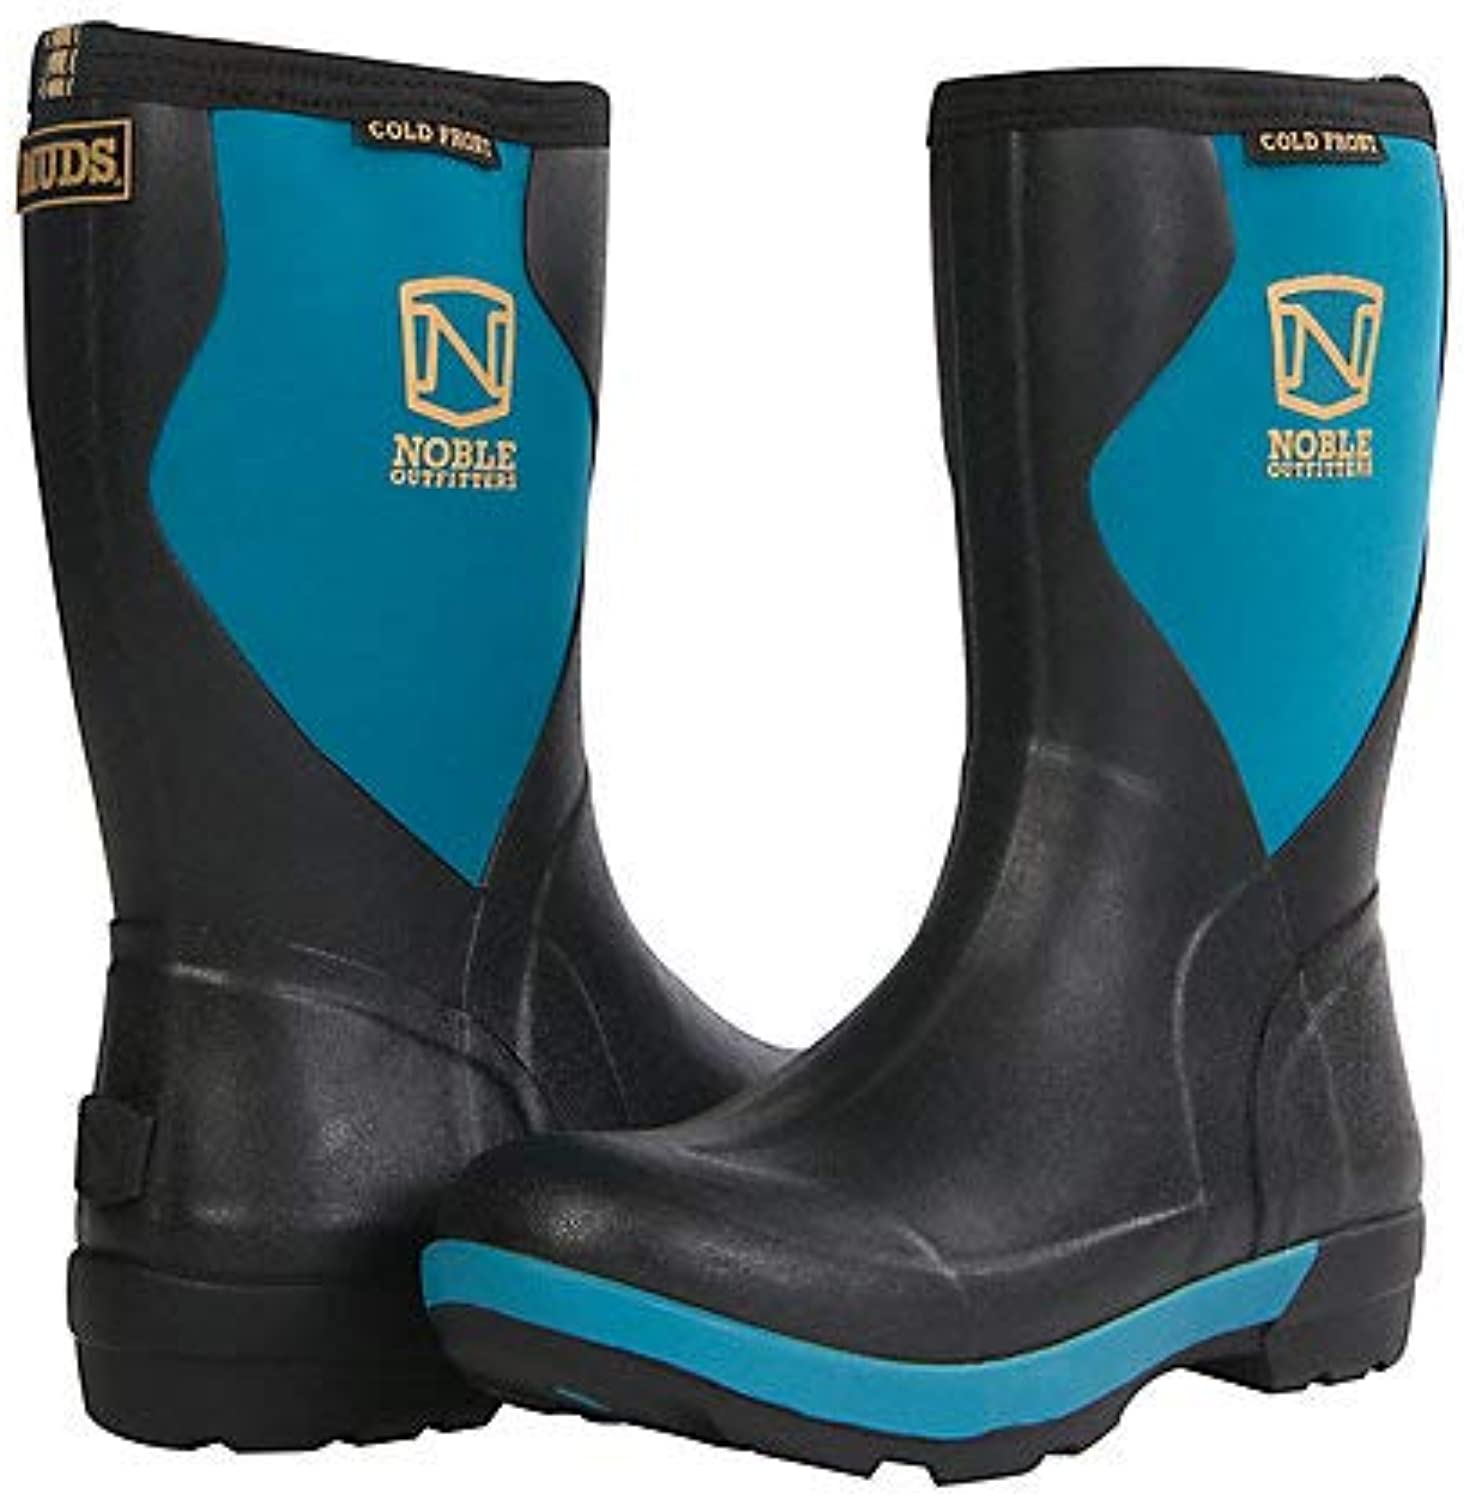 Noble Ladies MUDS Cold Front Mid Turq Boots